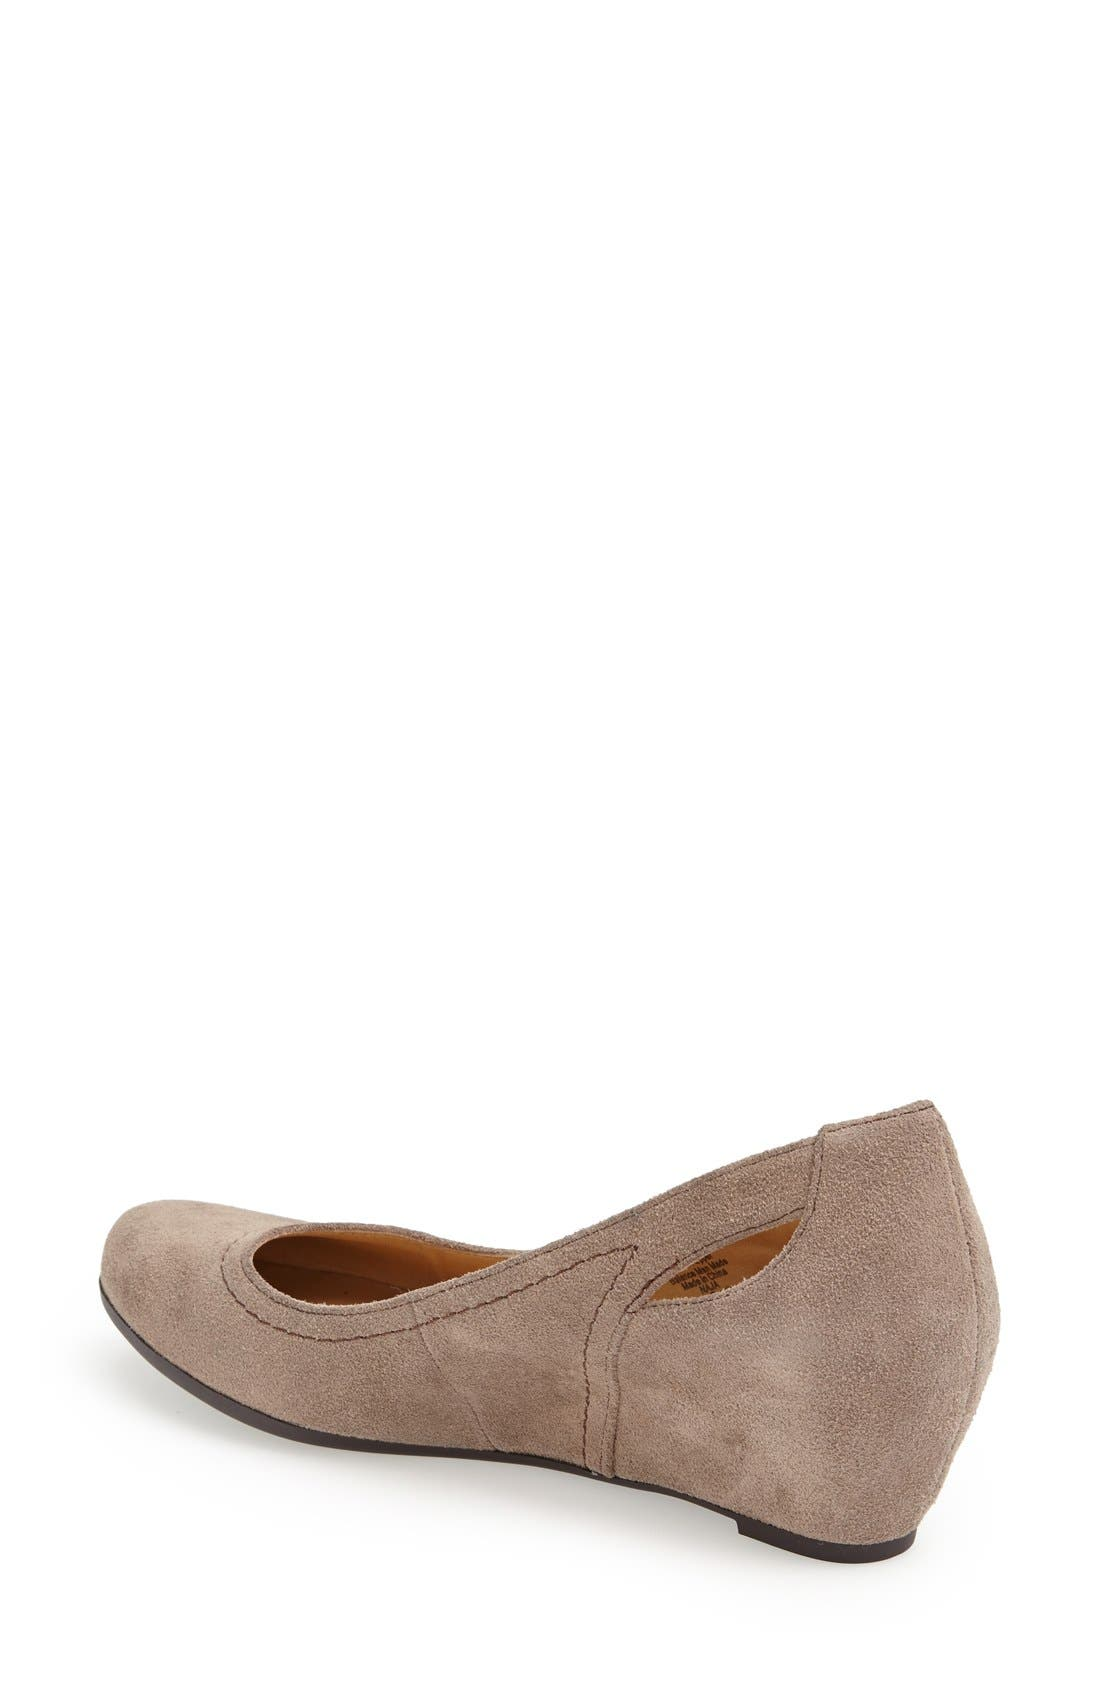 Alternate Image 2  - Naturalizer 'Naja' Suede Pump (Women)